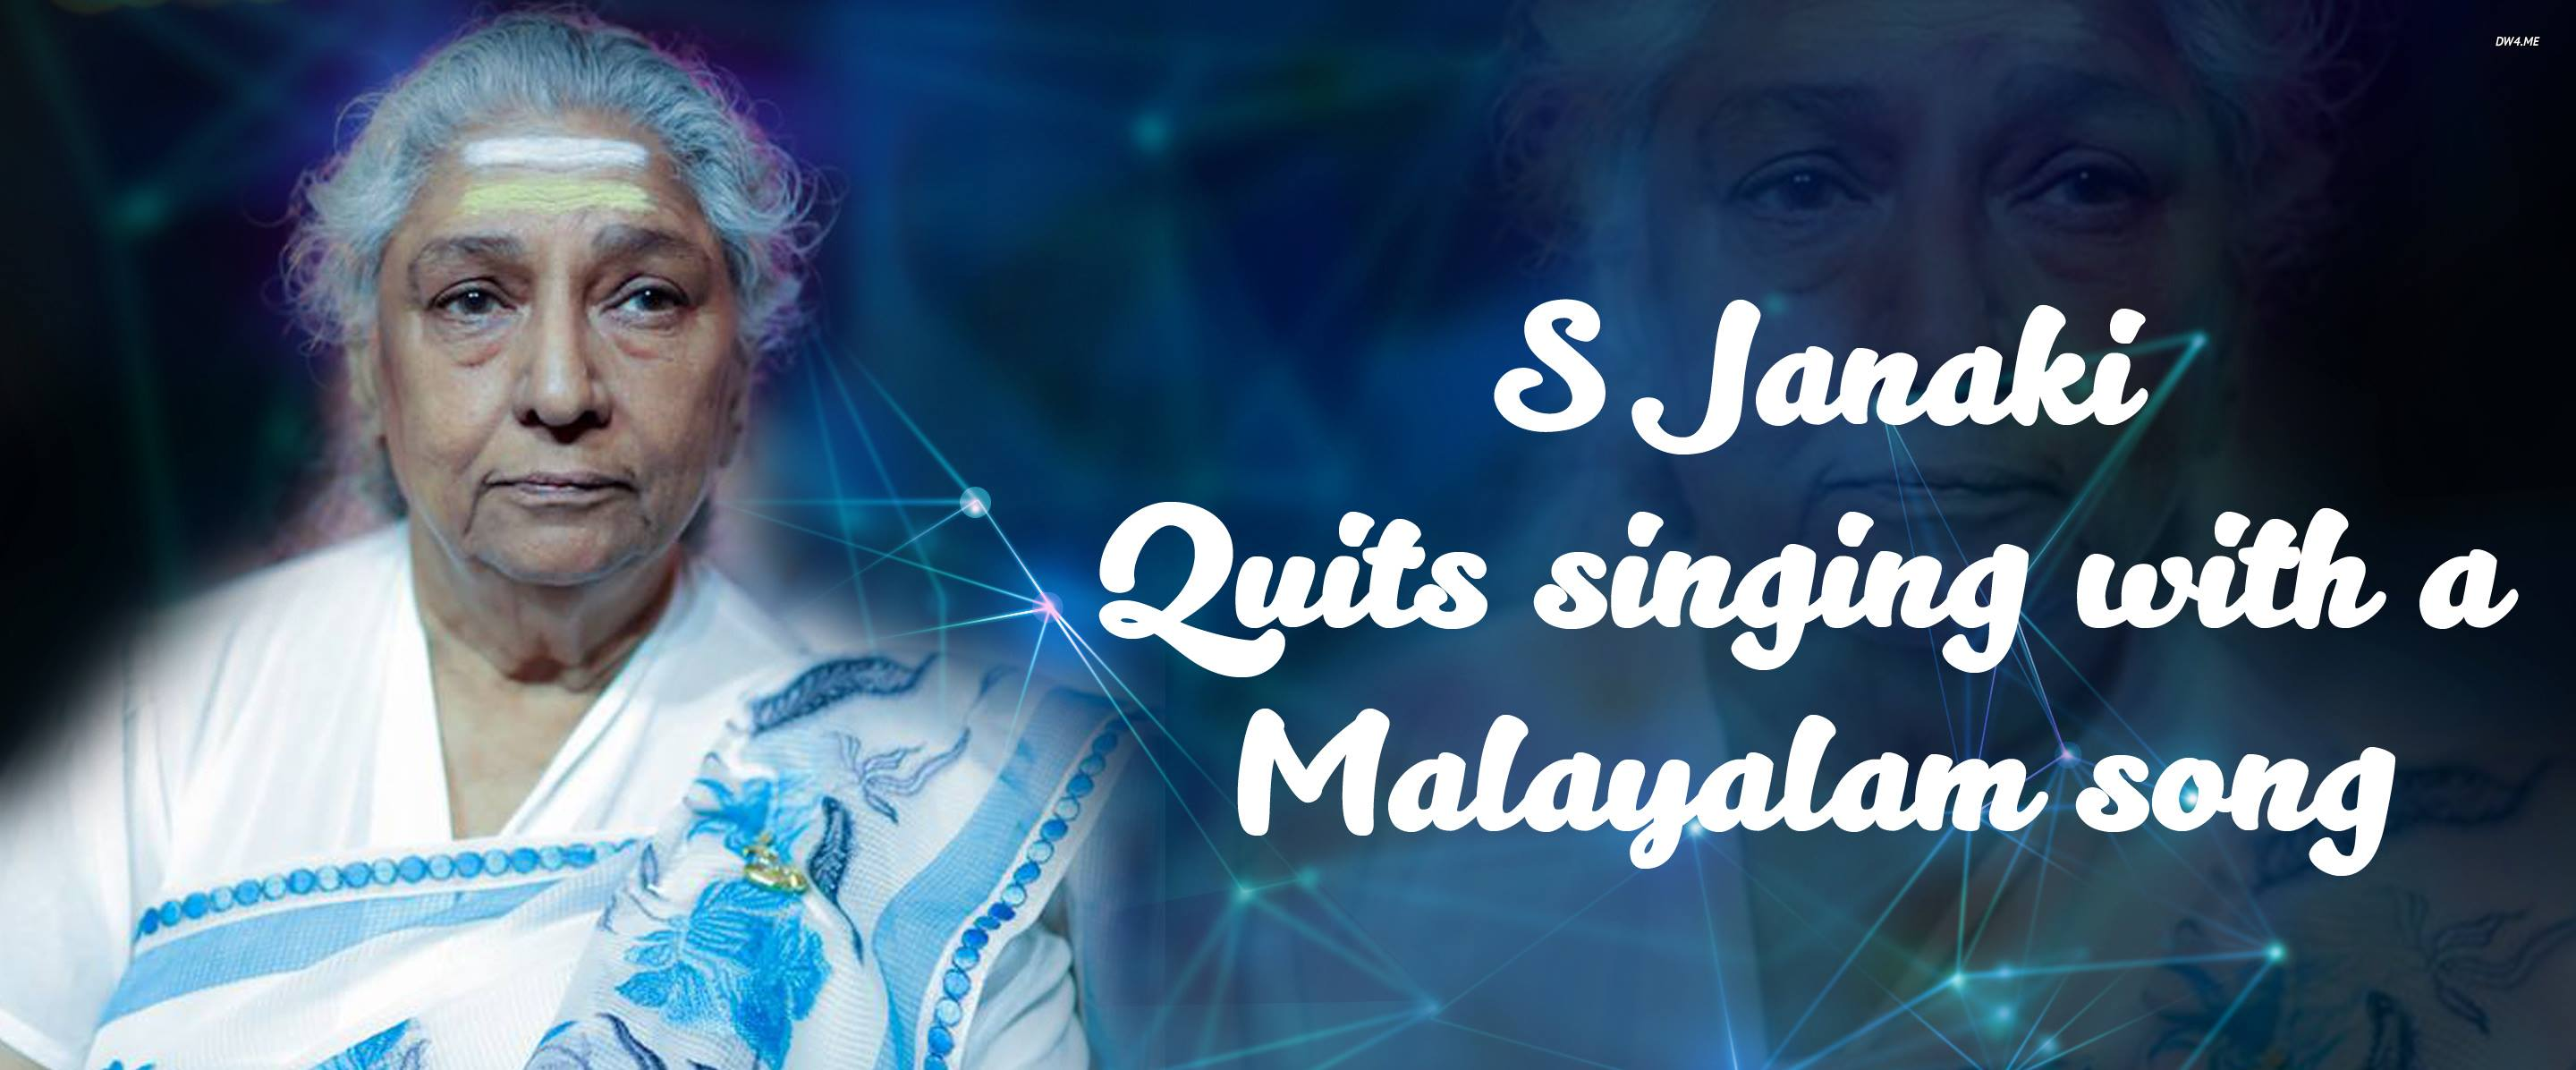 S Janaki quits singing with a Malayalam song